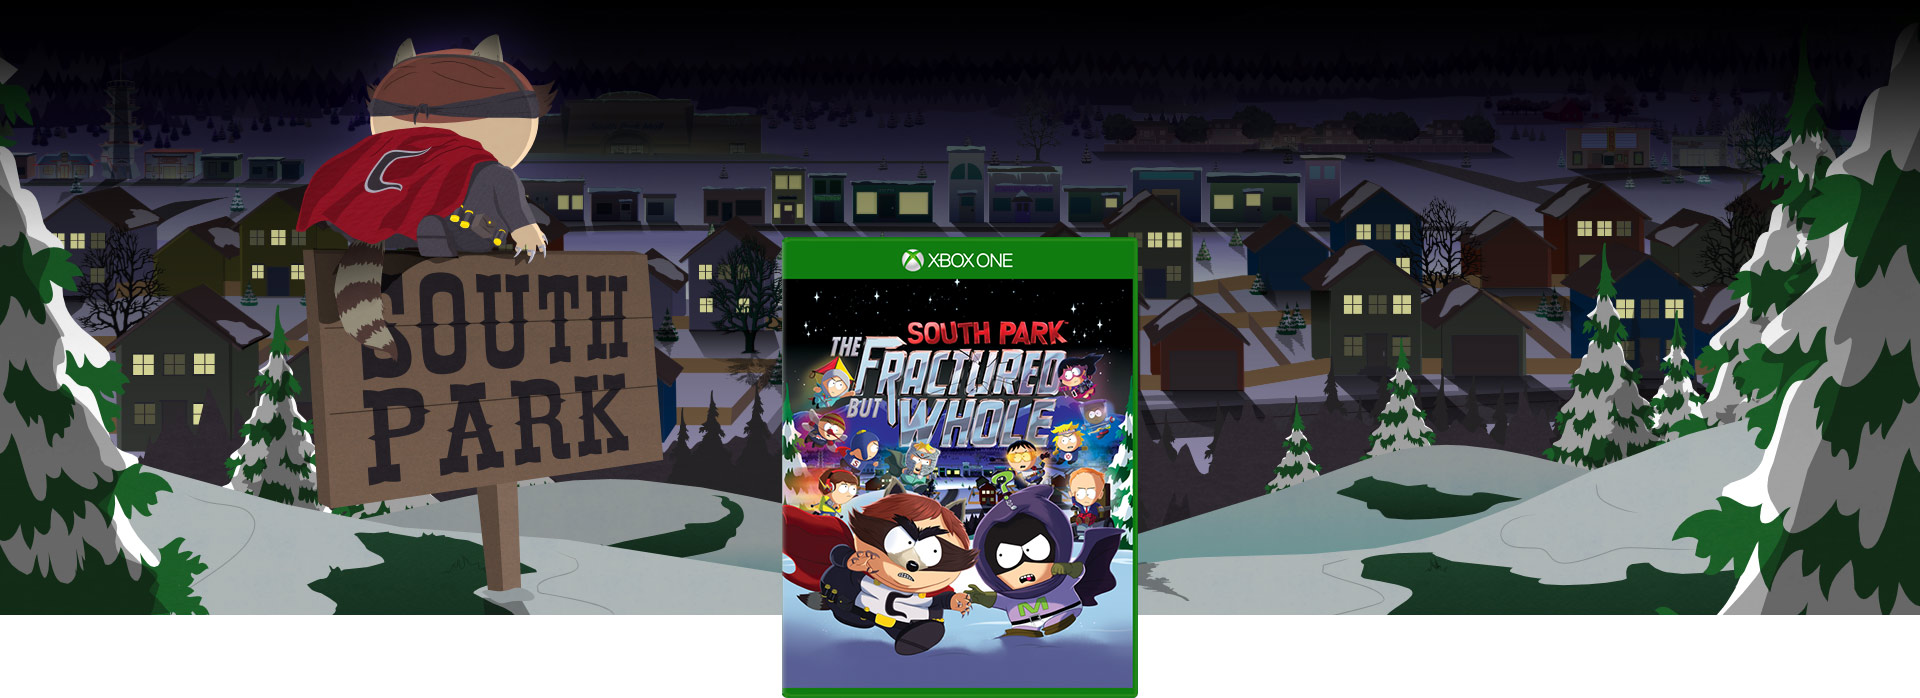 A South Park Fractured but Whole dobozának képe